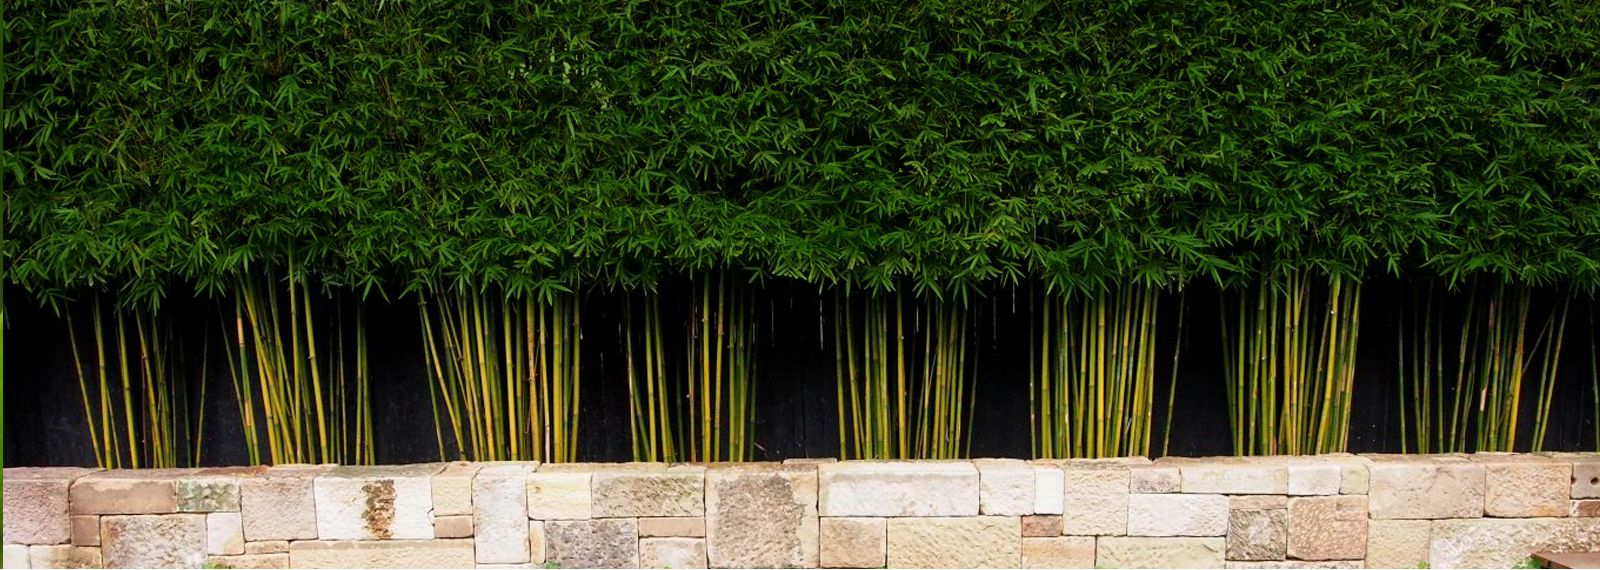 Image Of Live Bamboo Fence Garden Pinterest Bamboo Plants Bamboo Fence